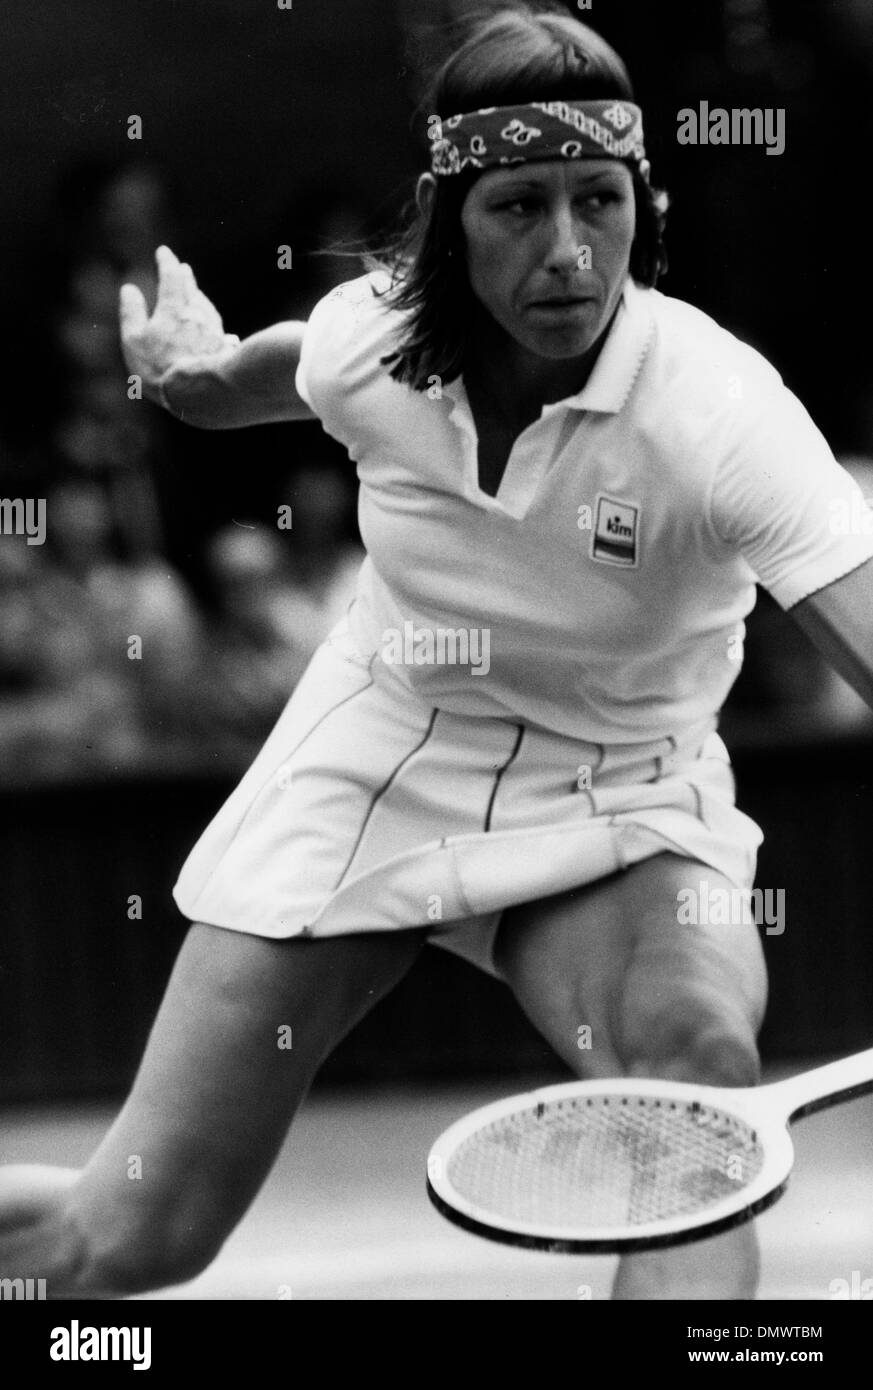 june 29 1981 london england uk tennis star martina navratilova seen